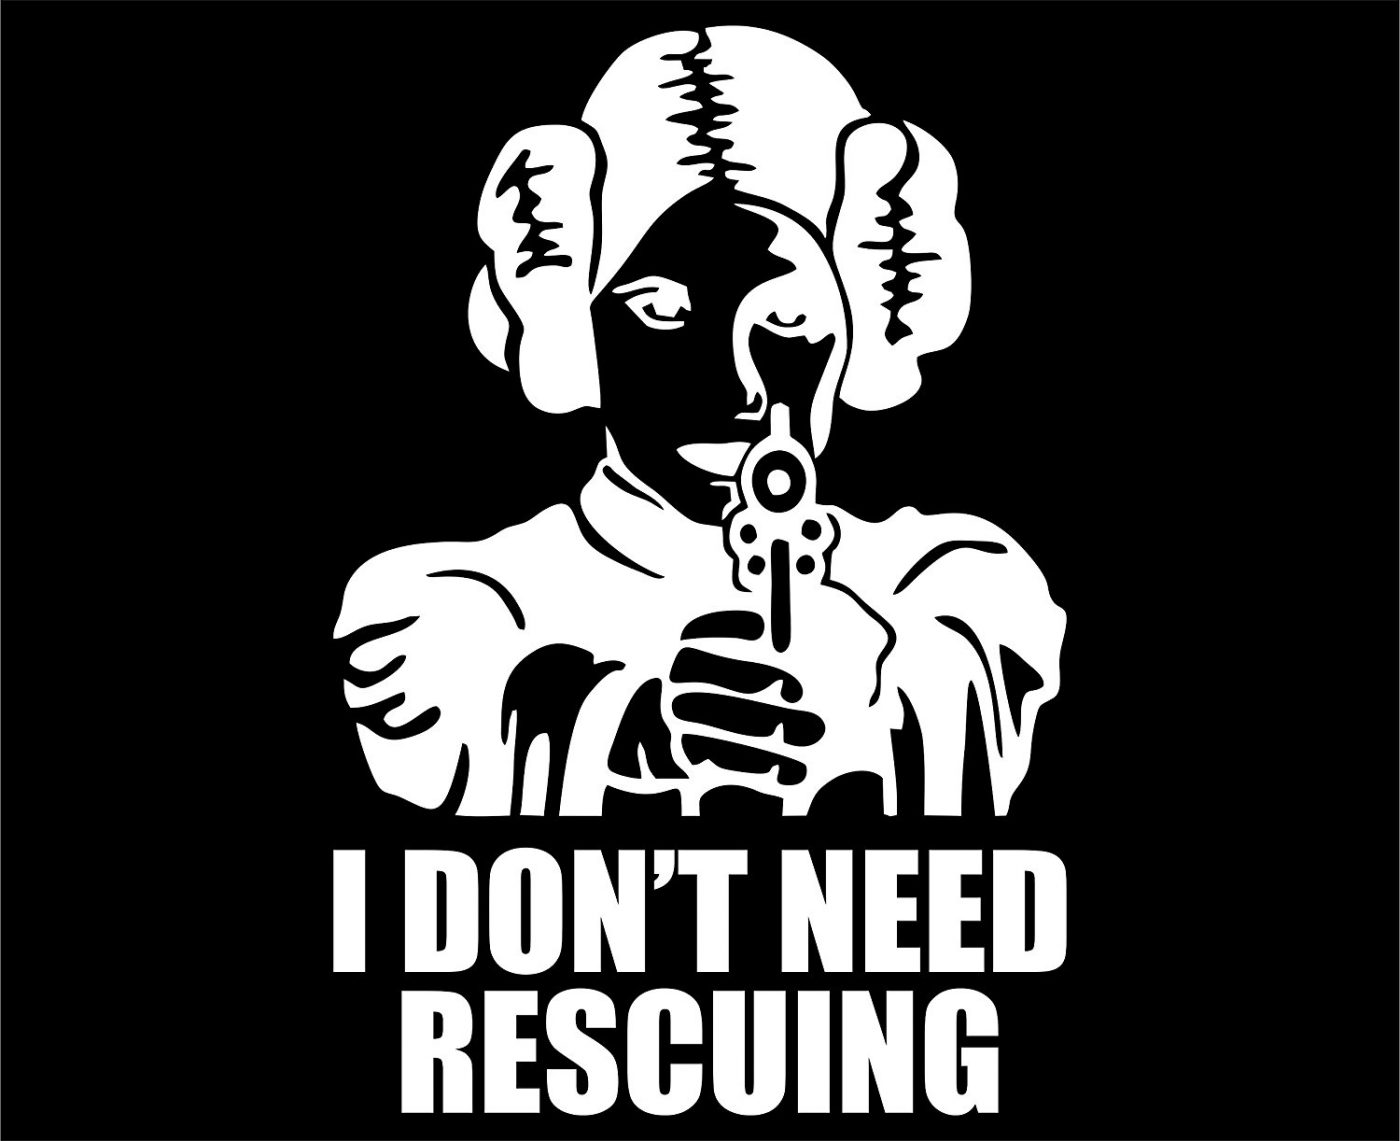 I Don't Need Rescuing - Vinyl Die Cut Decal / Bumper Sticker